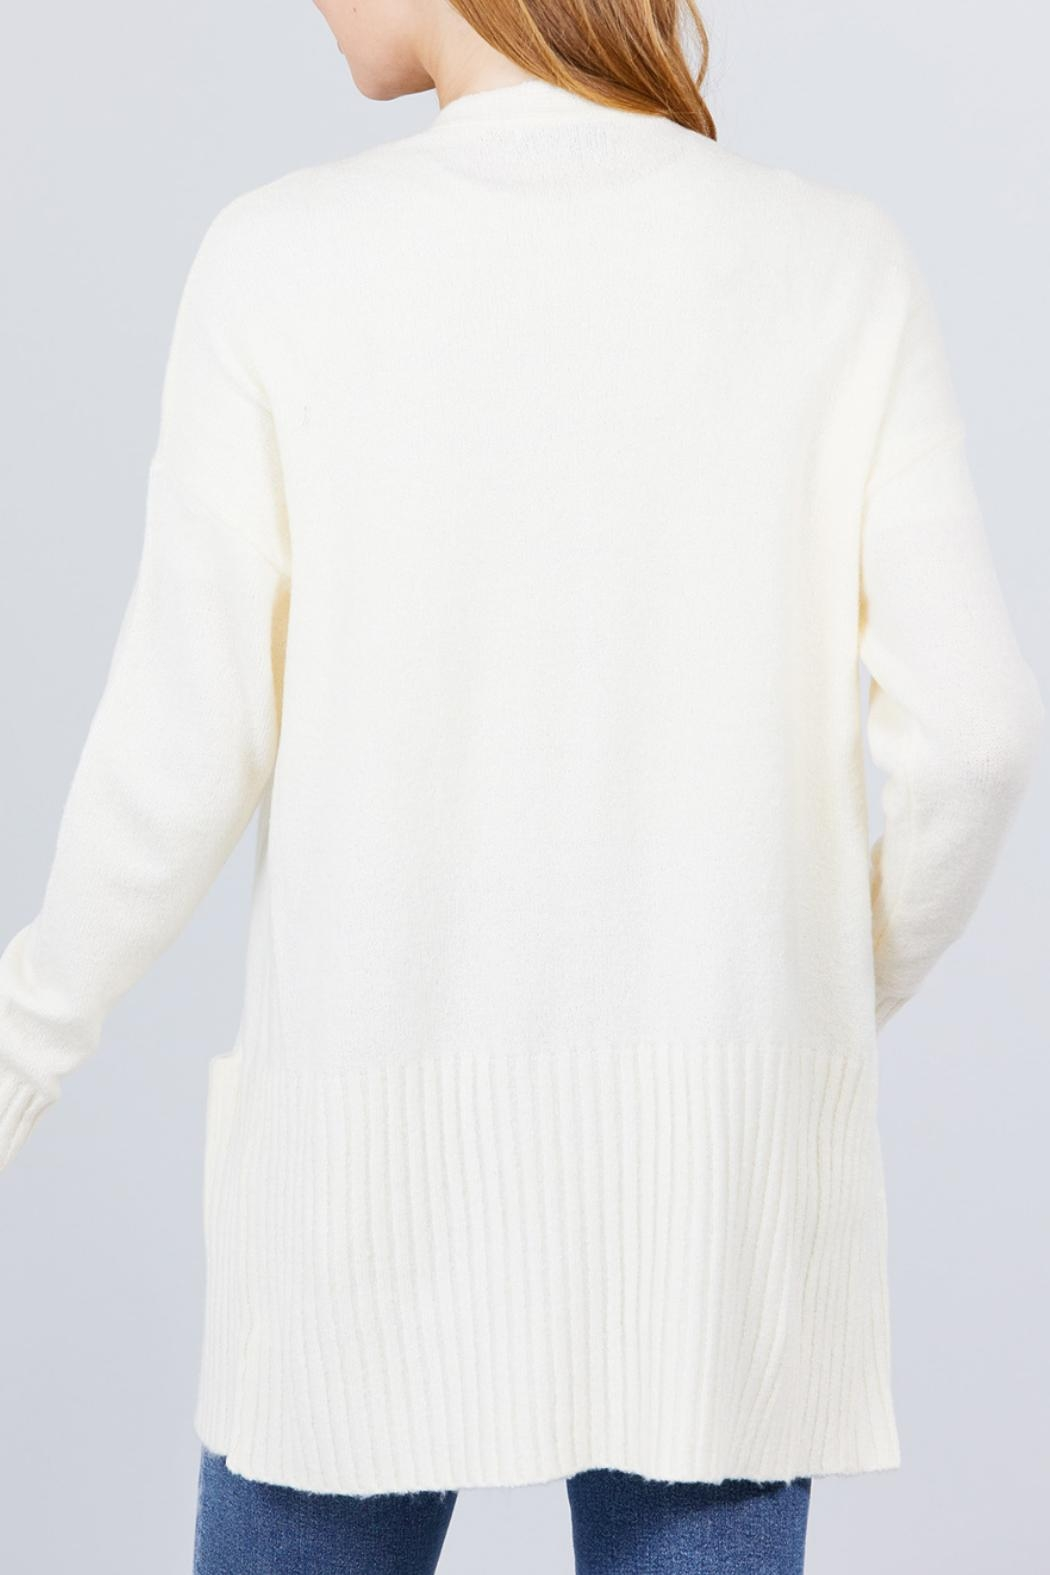 Active USA Ivory Open-Front Cardigan - Back Cropped Image